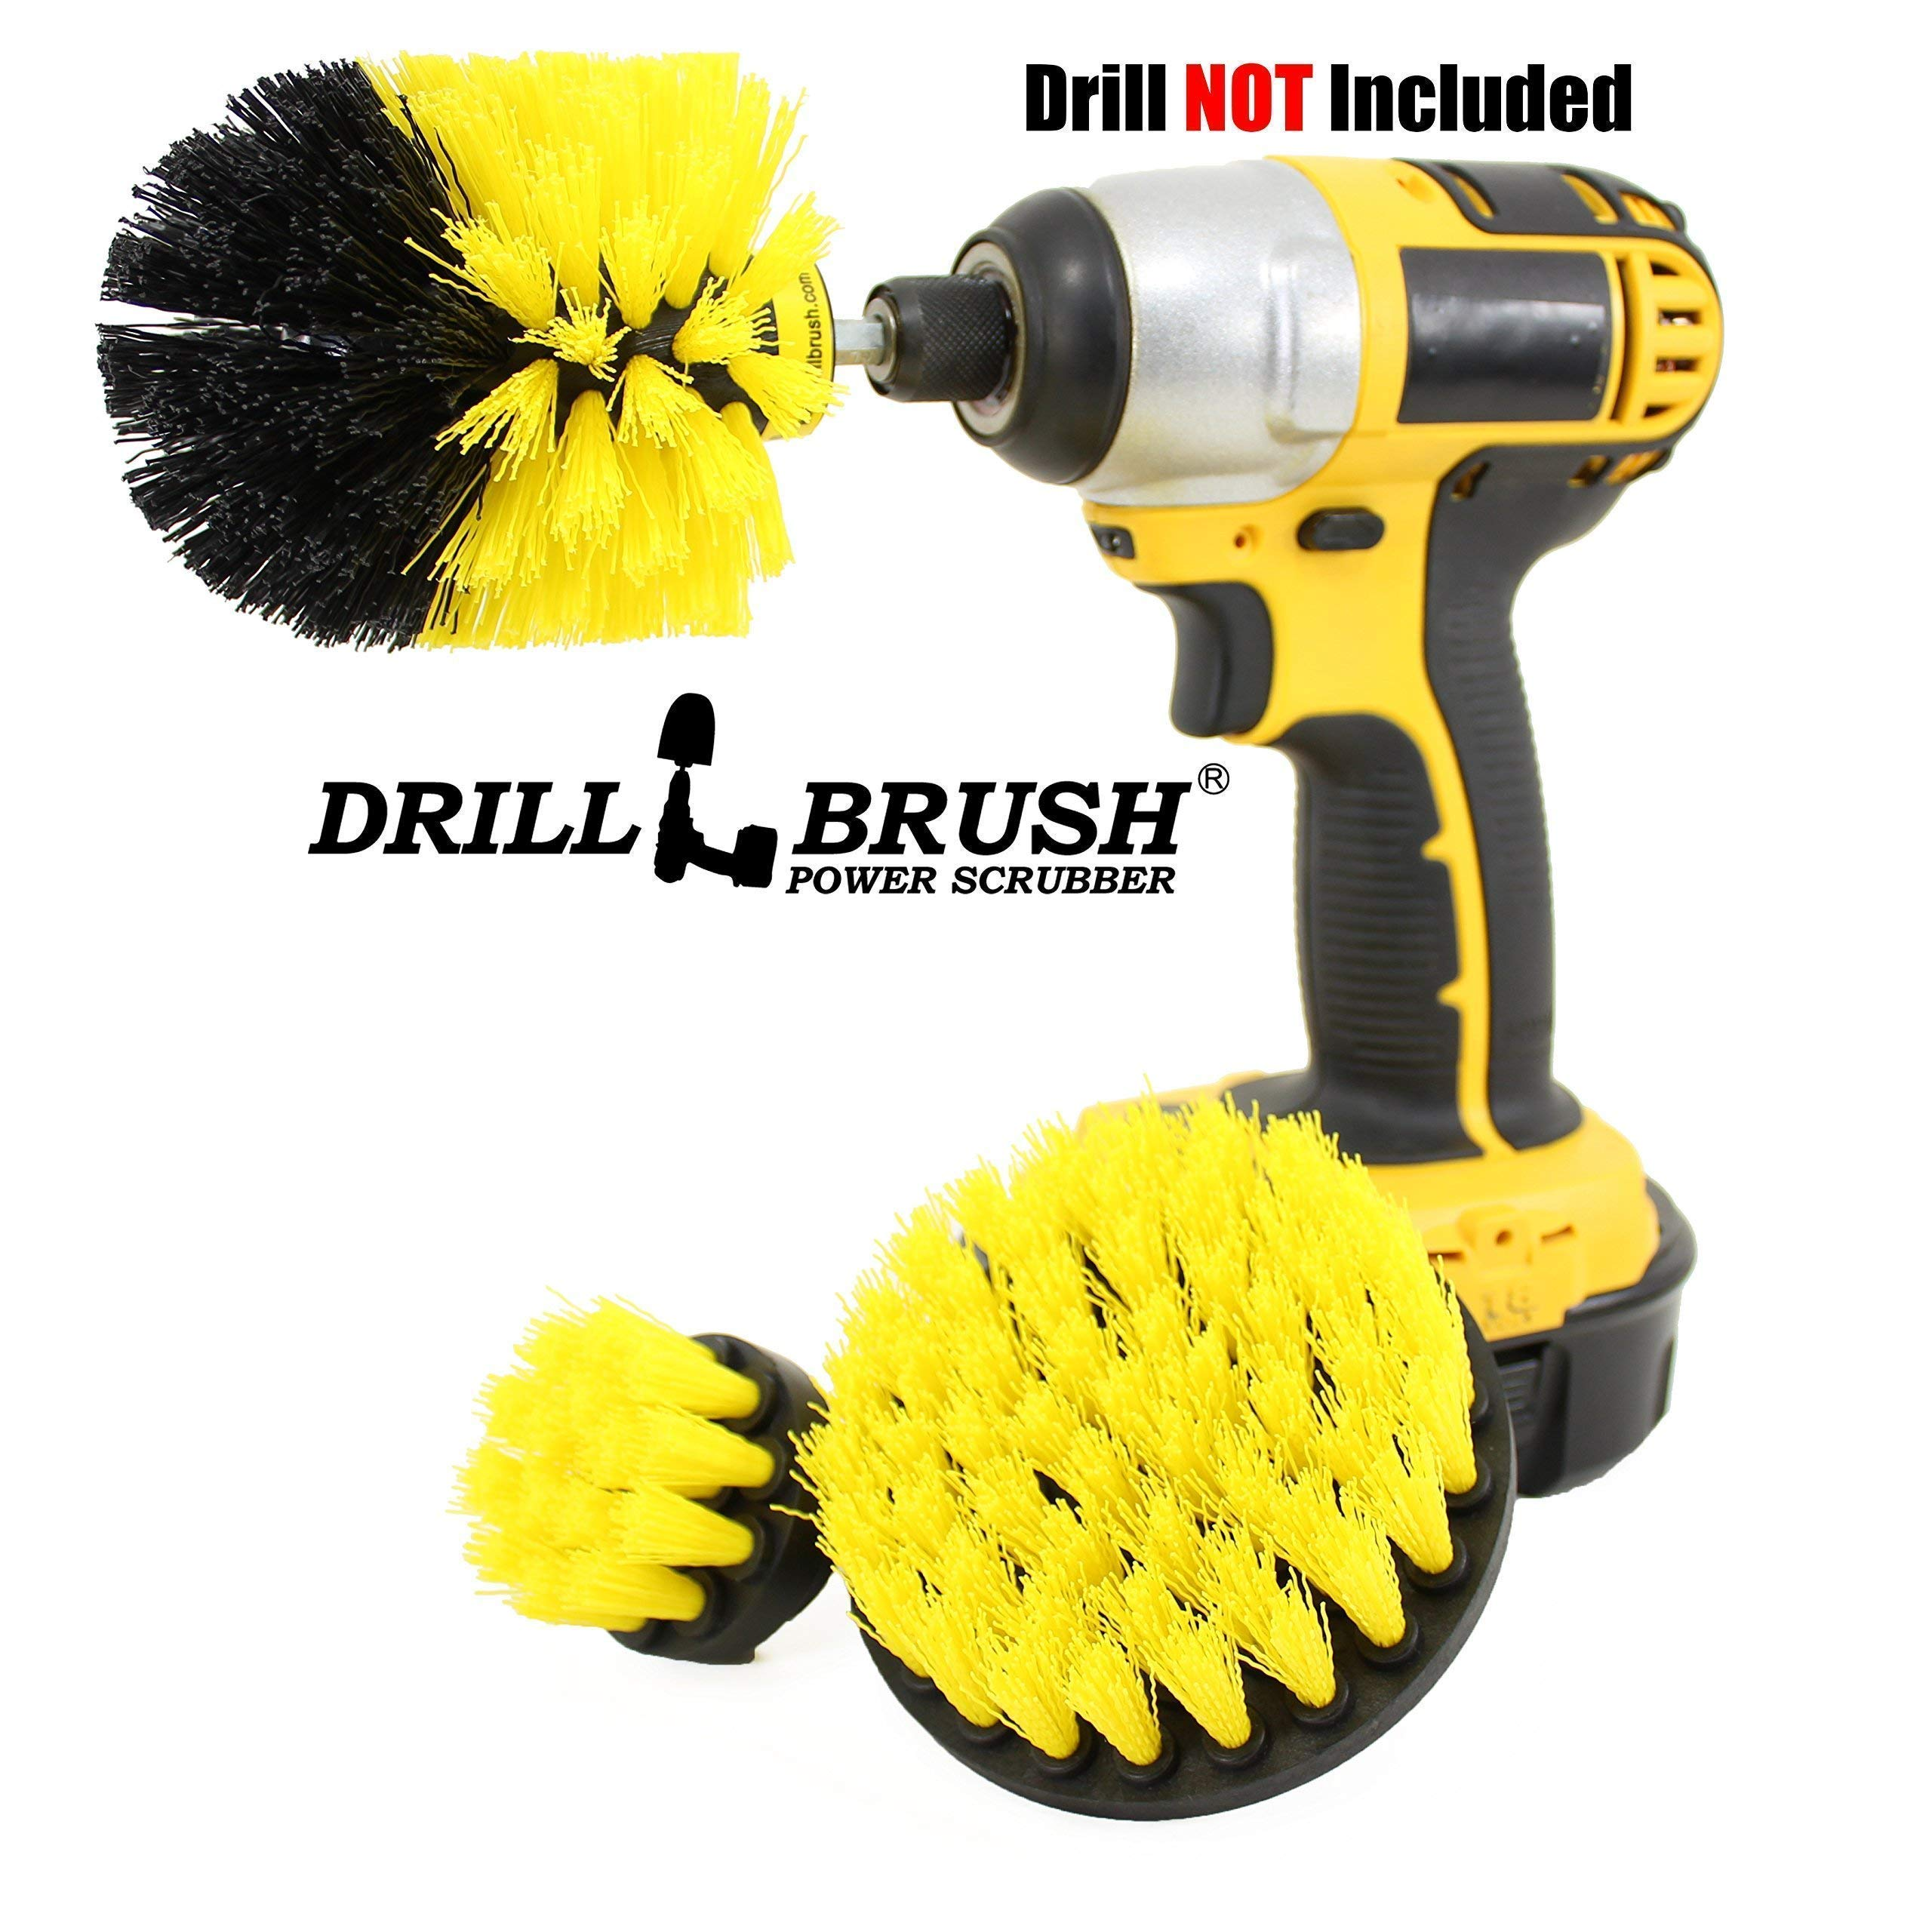 Bathroom Surfaces Tub, Shower, Tile and Grout All Purpose Power Scrubber Cleaning Kit by Drillbrush